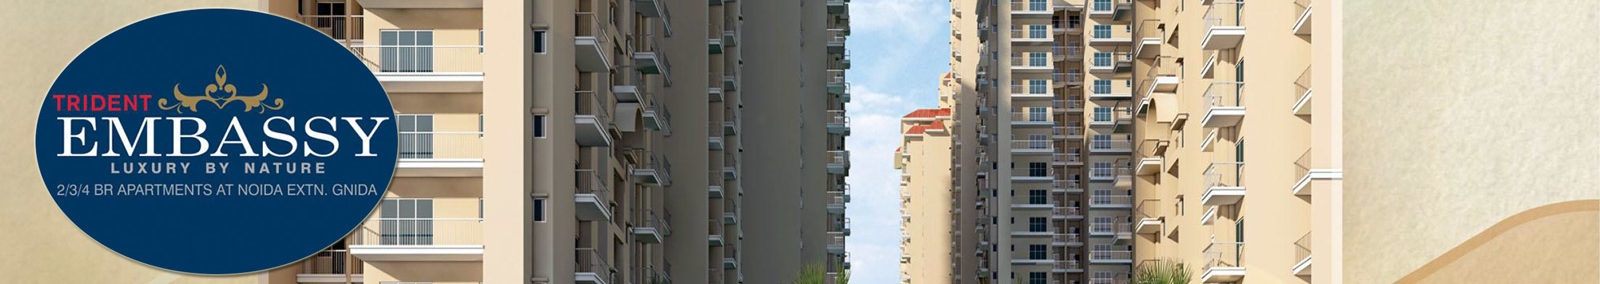 Residential Flats-trident Embassy, Affordable Flats Noida Extension |